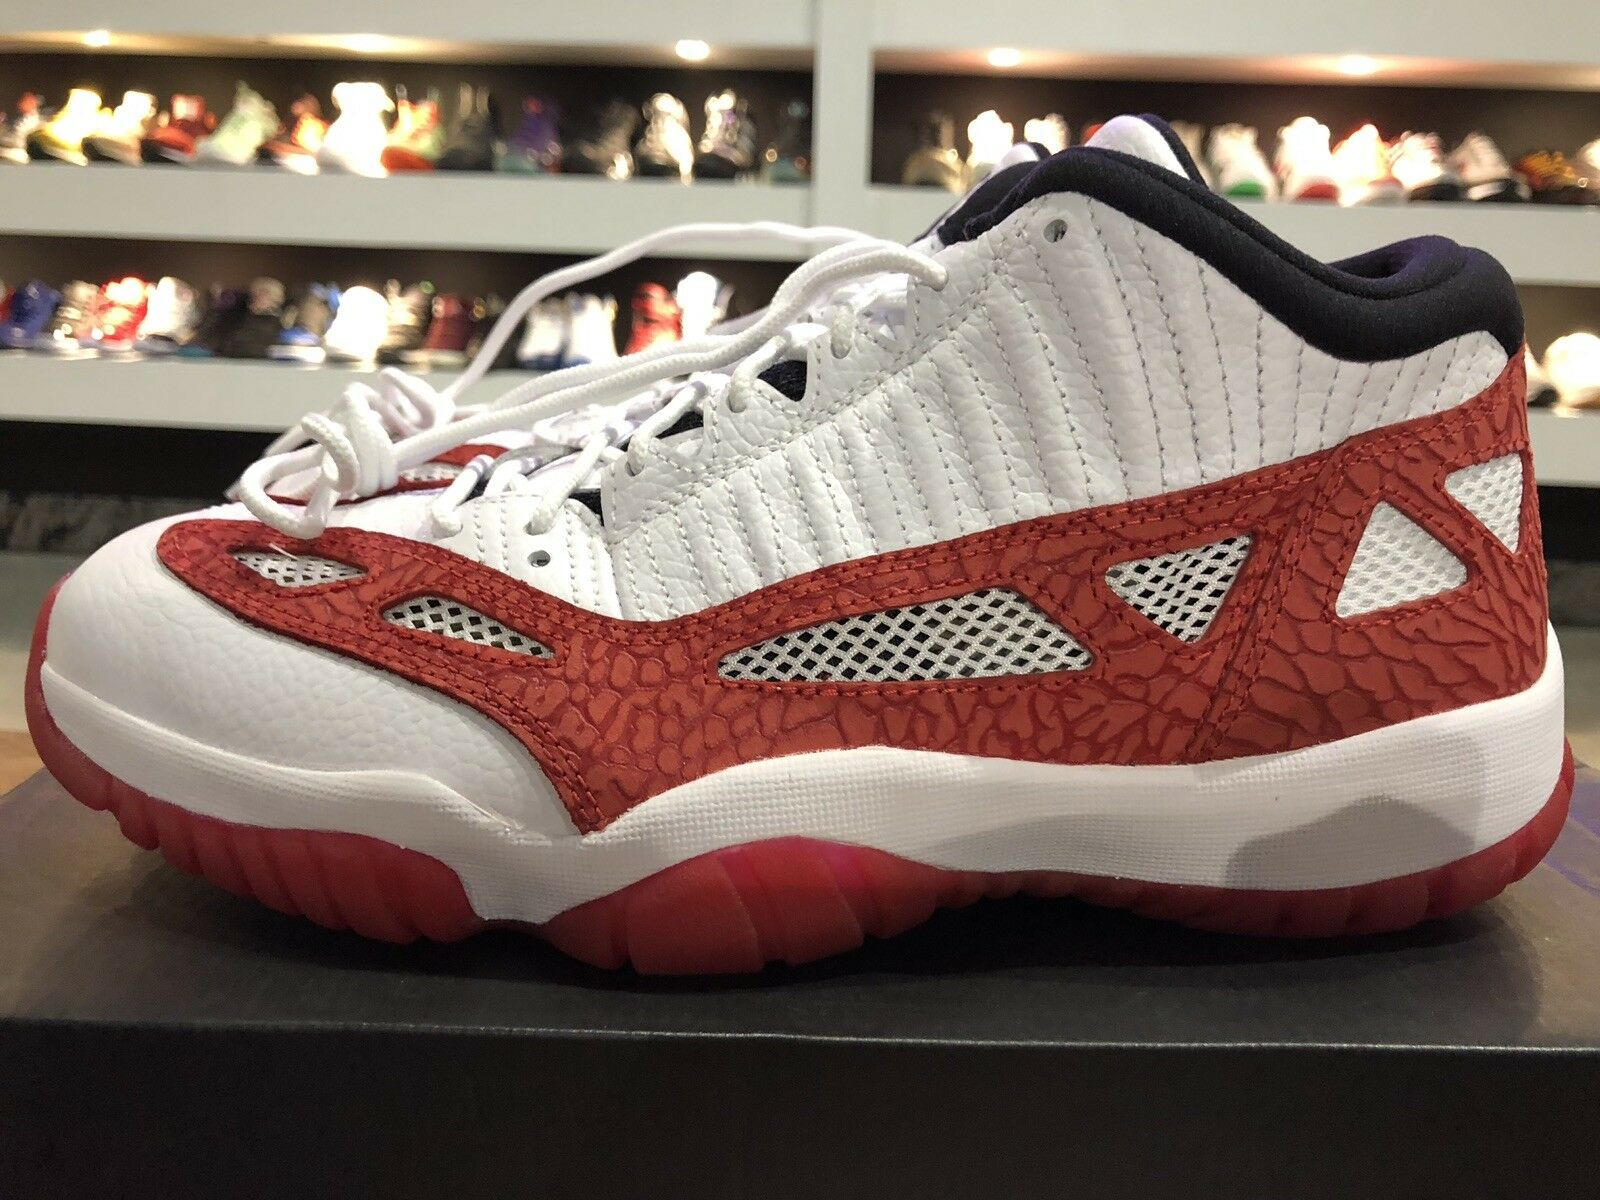 Jordan 11 Low IE In Wht Gym Red Blk Sz 9.5 New In Box 100% Authentic